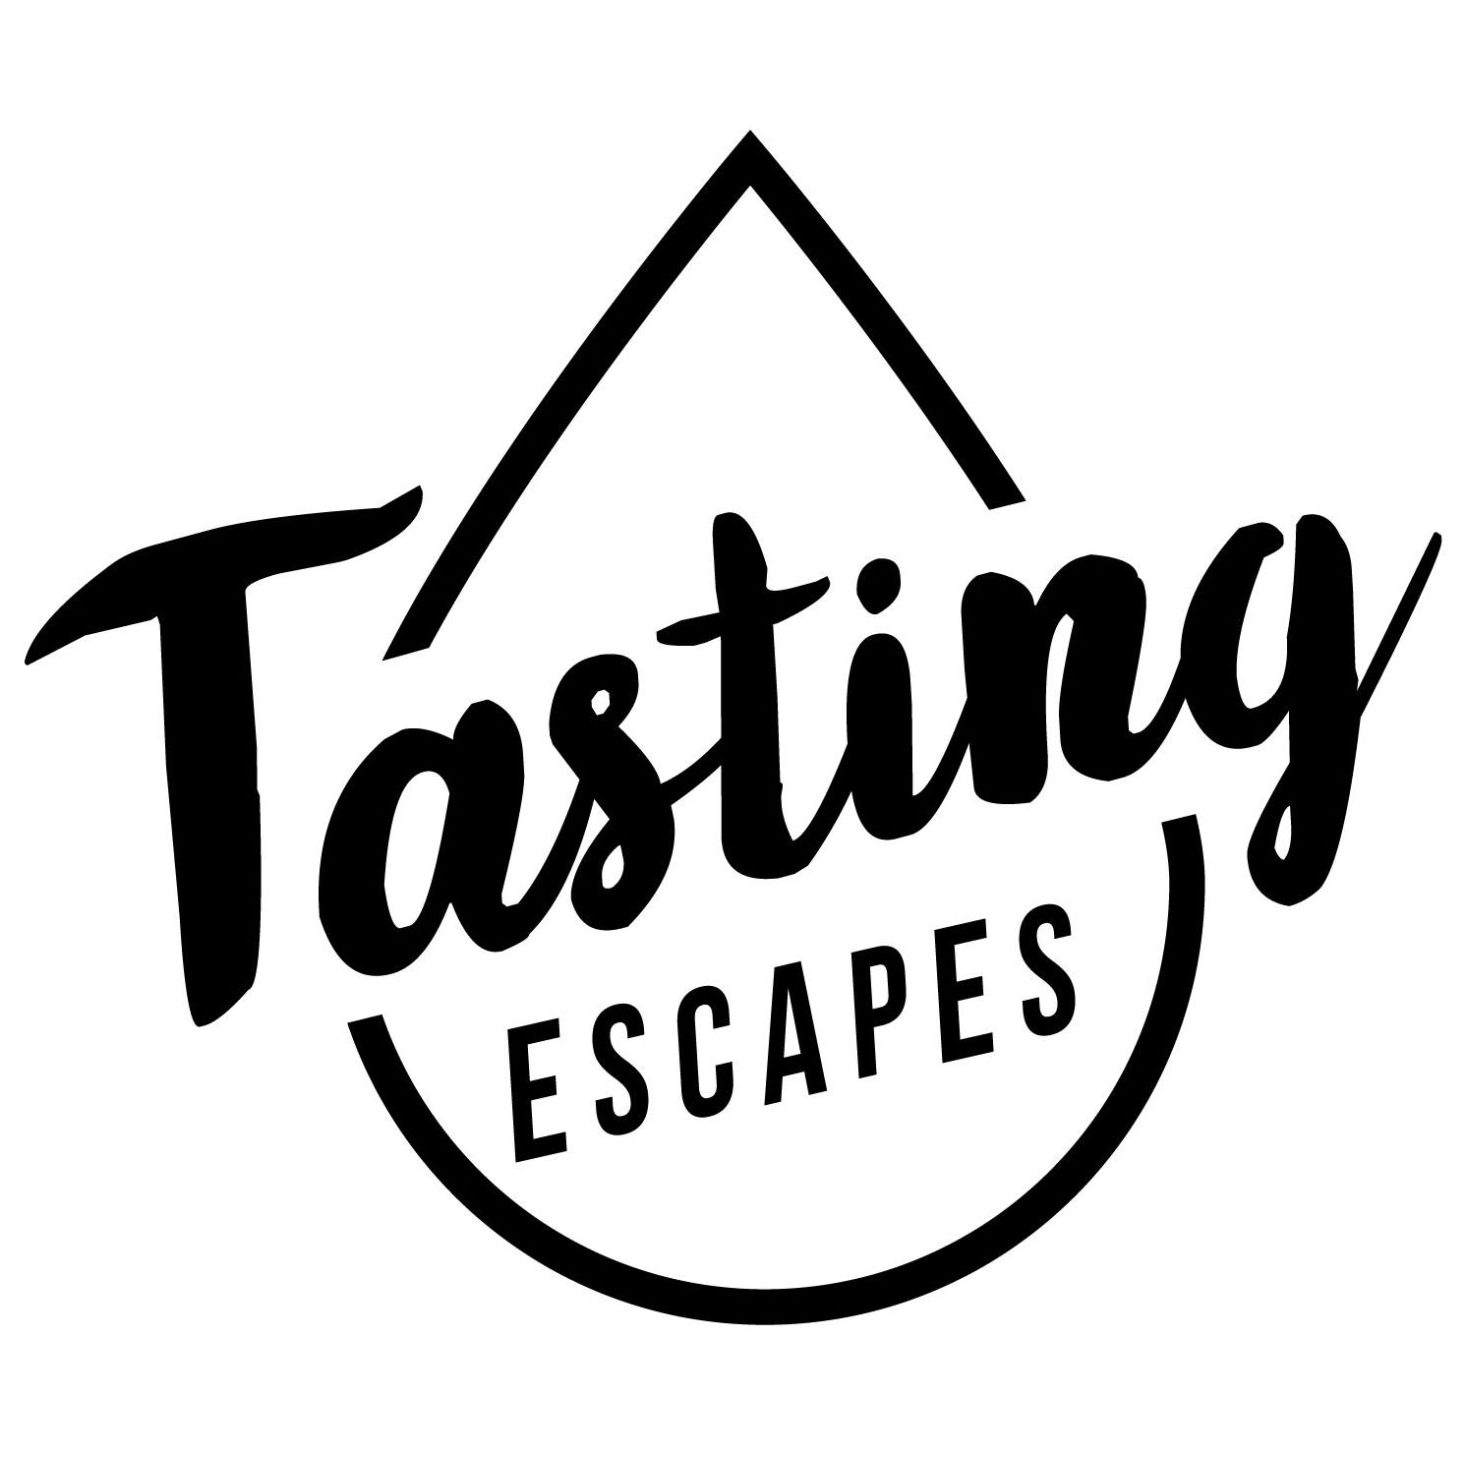 tasting-escapes-logo-e1579087329708 Partners